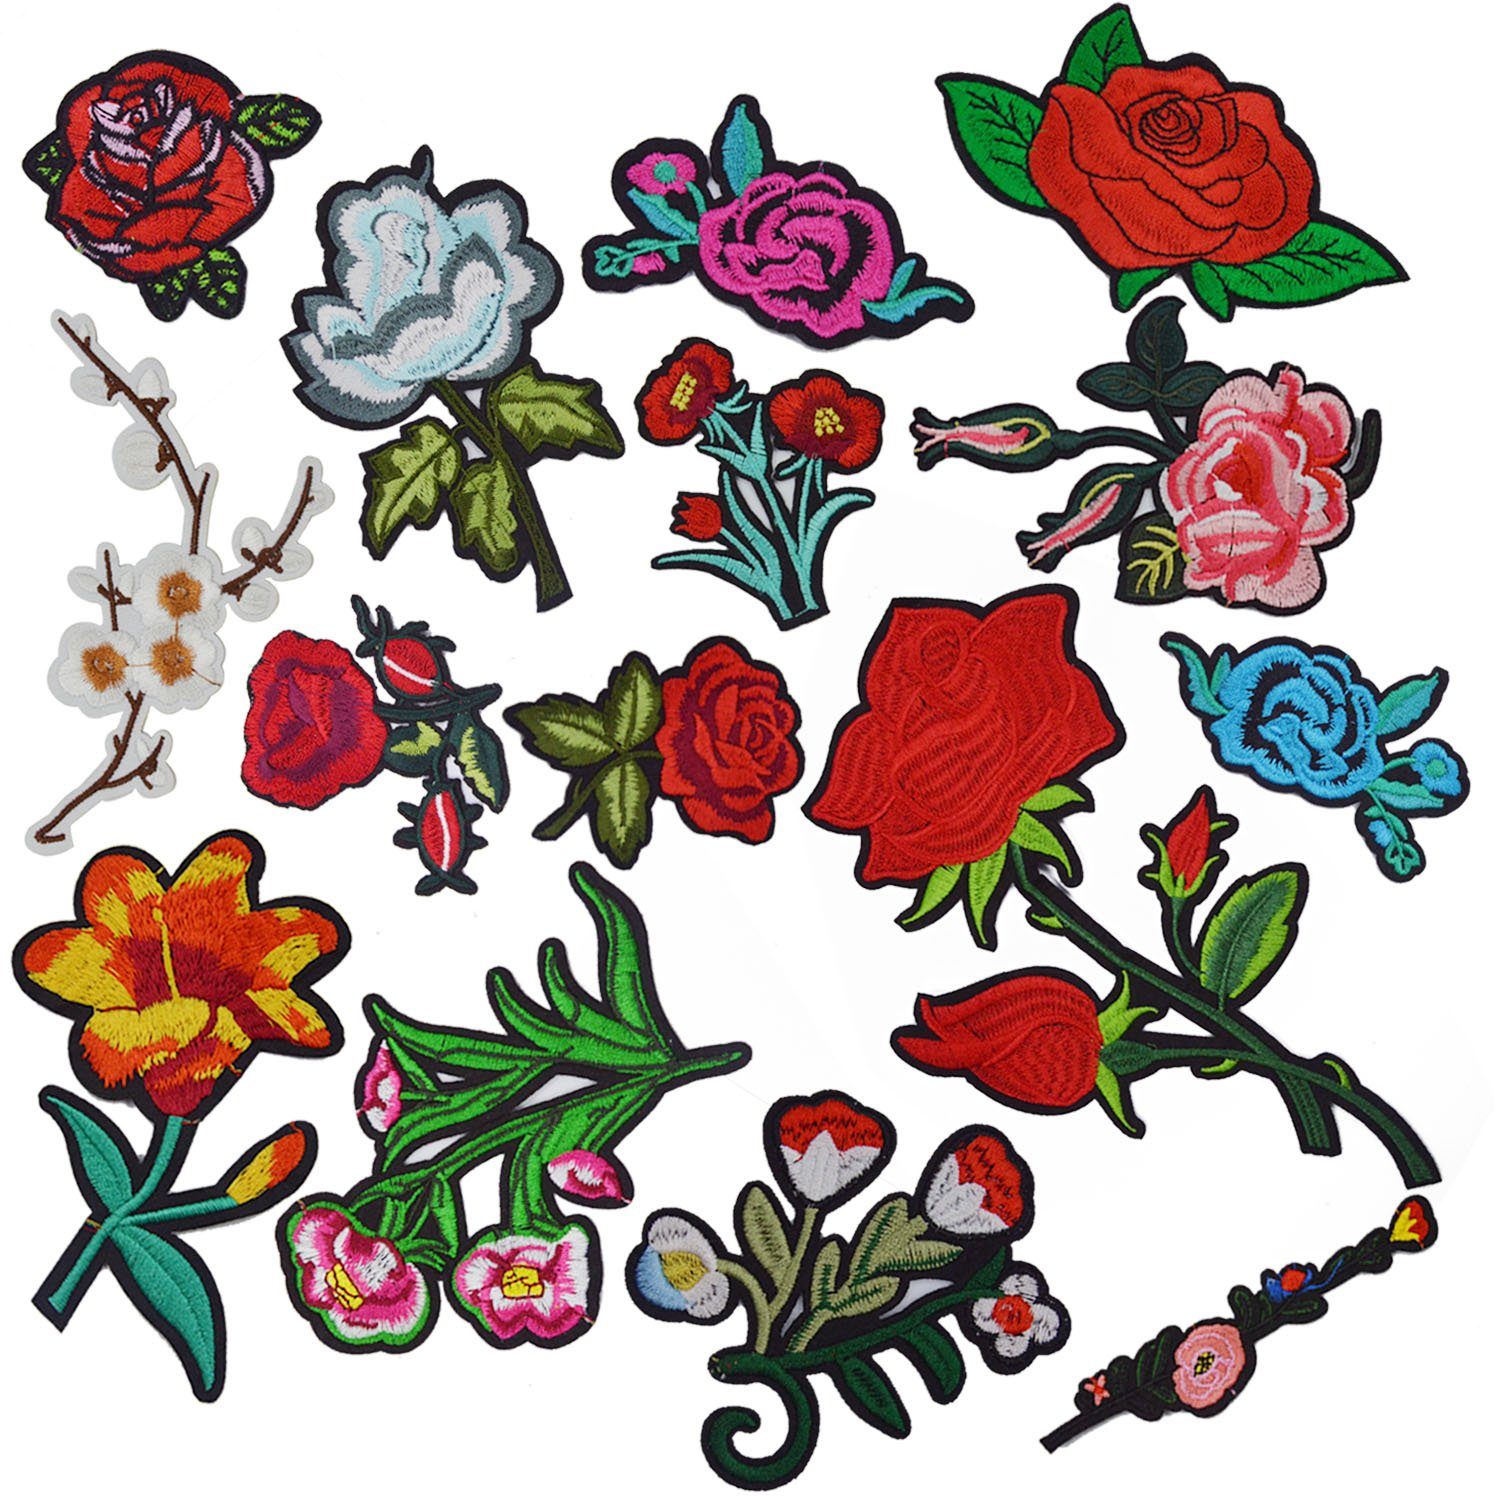 Flower Iron On Patches For Clothing, Satkago 15Pcs Rose Patches Flower Patches Iron On or Sew On Applique Embroidered Patches For Jeans Jackets Backpacks